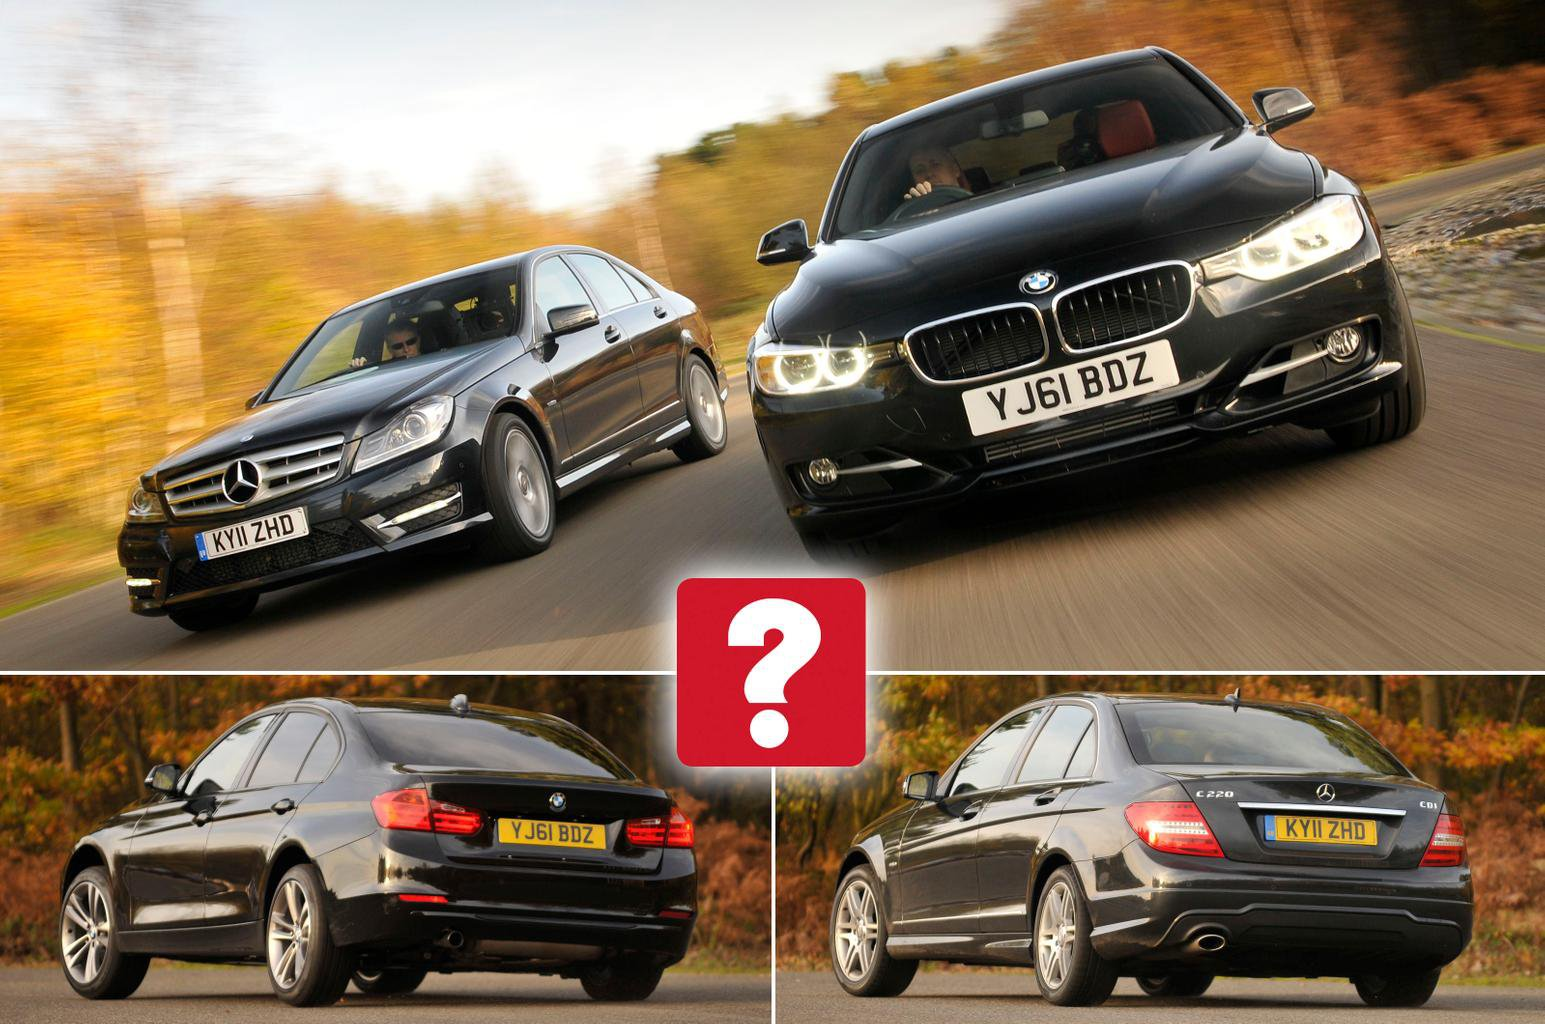 Used BMW 3 Series vs Mercedes C-Class | What Car?